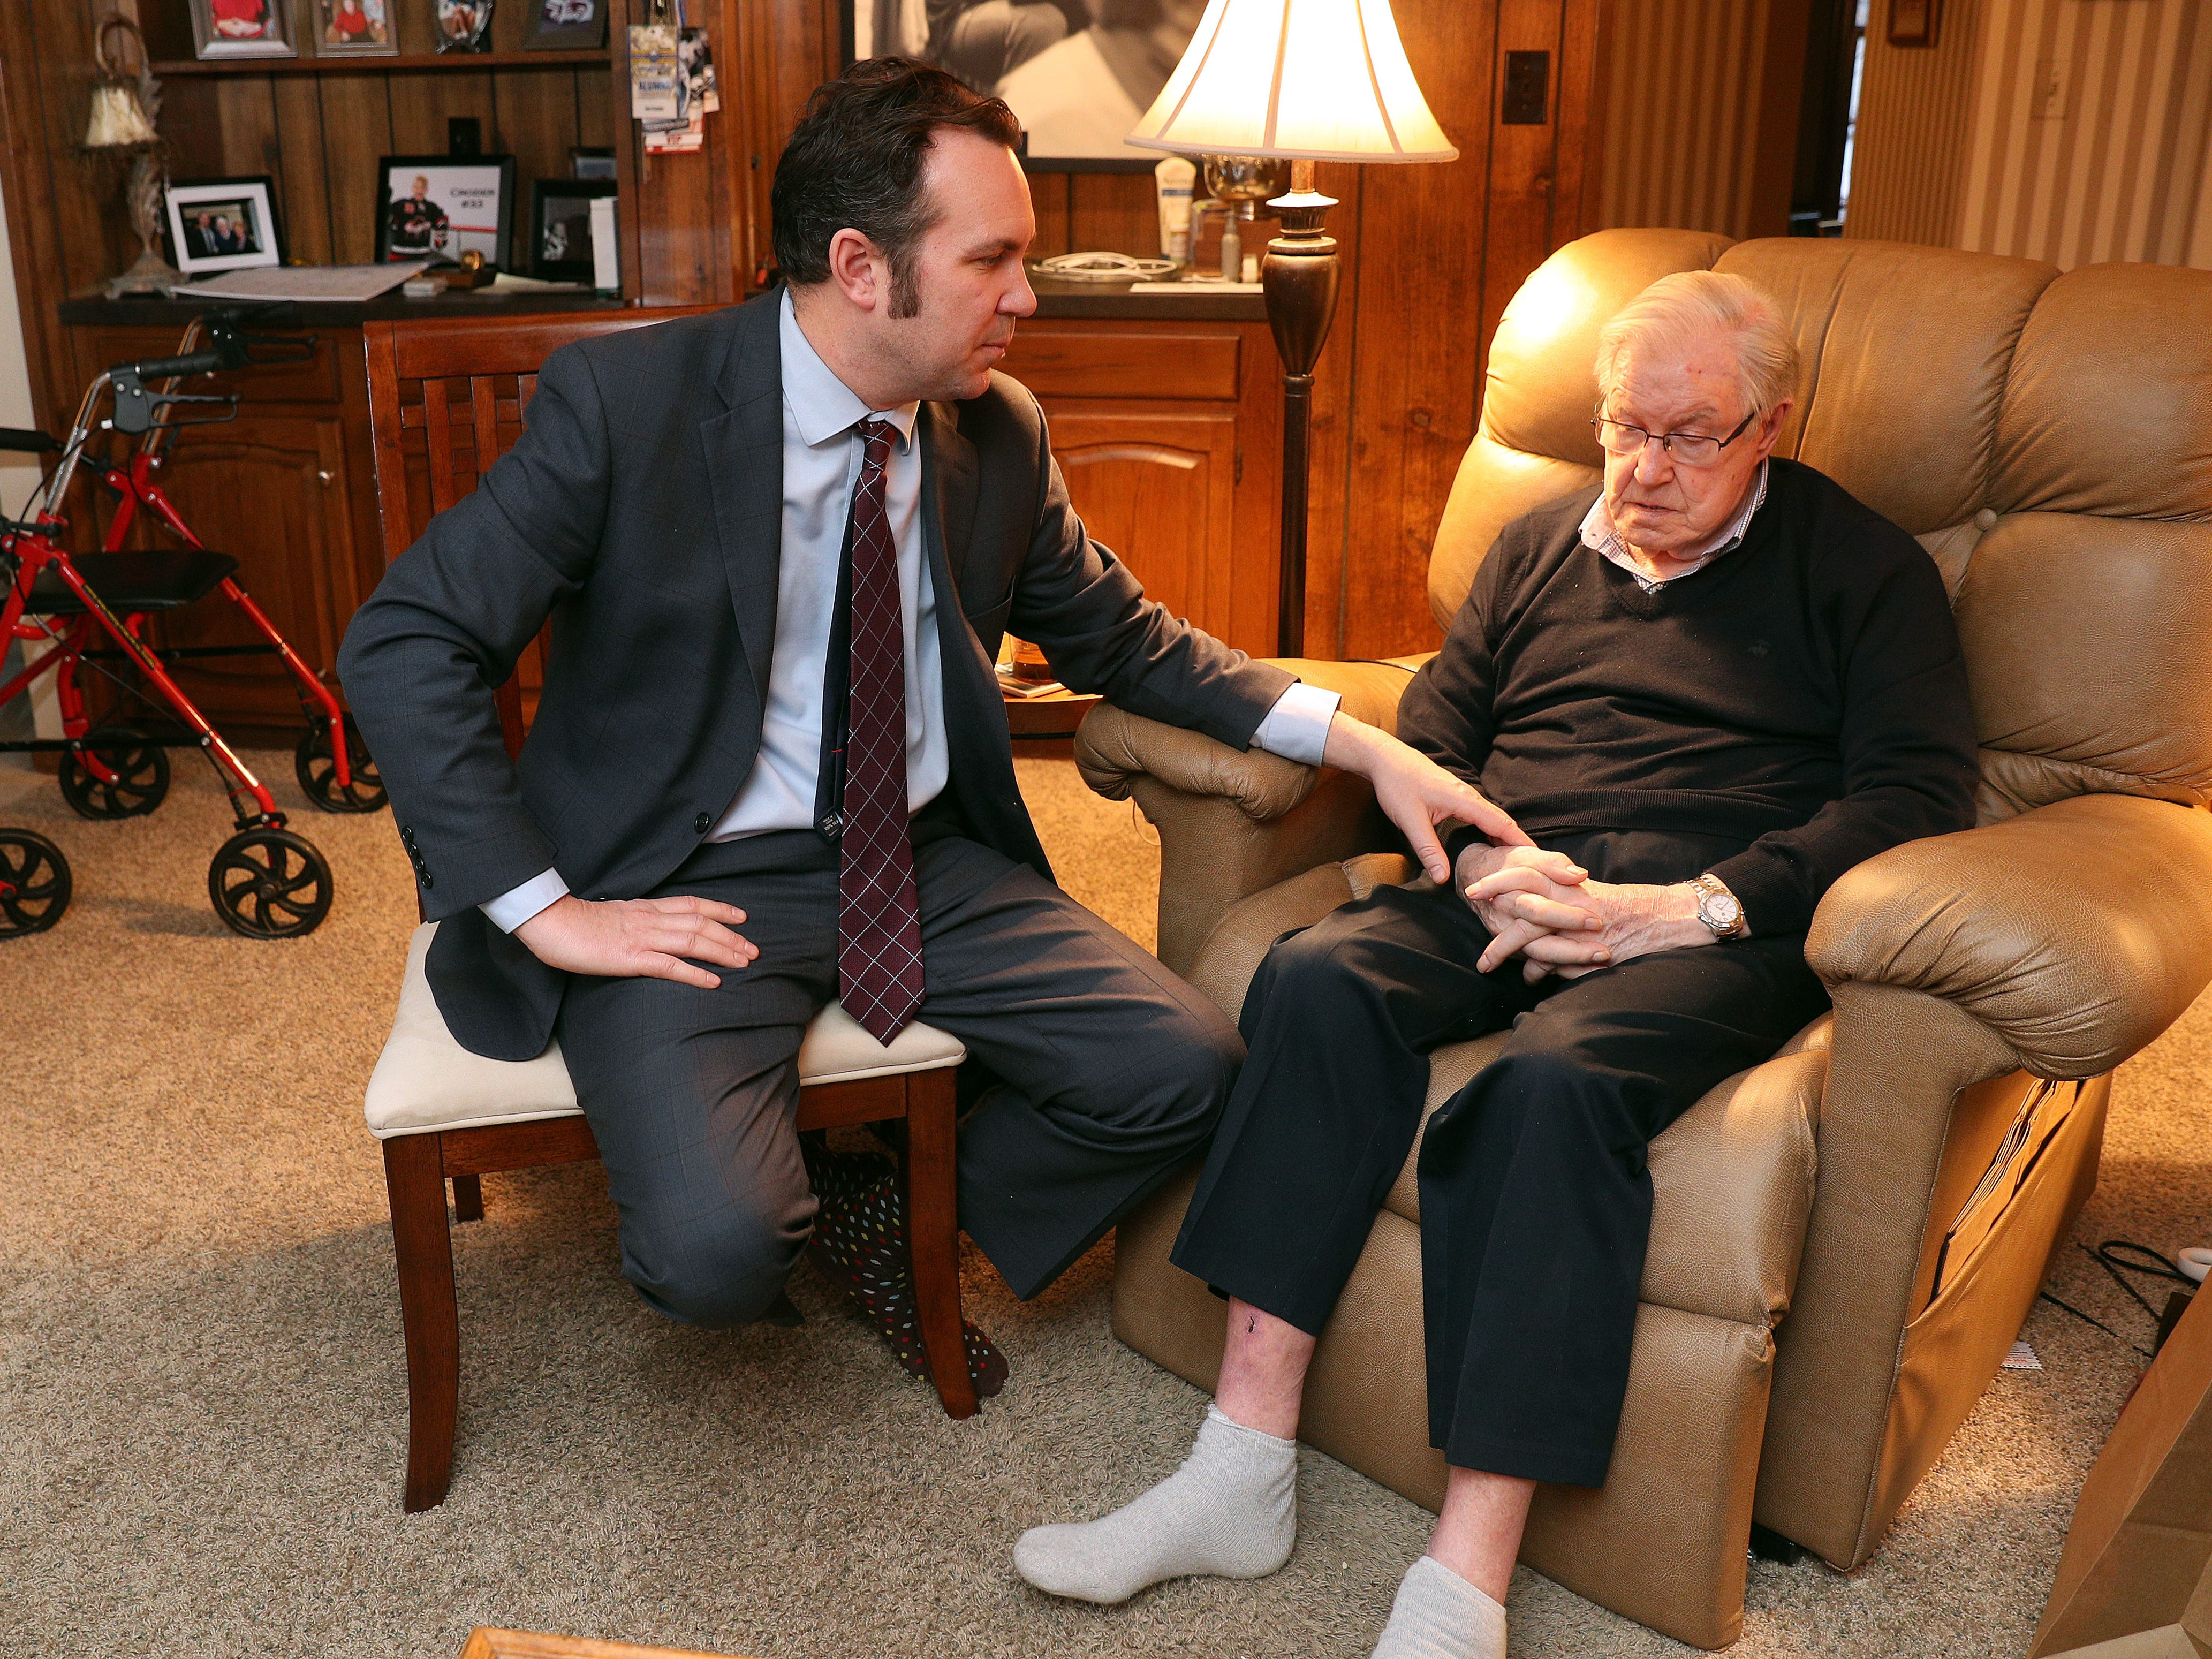 Hockey legend Joe Crozier in his Amherst home with his son, Rich.  Joe Crozier  coached the Rochester Americans to three Calder Cups and later coached the Sabres. He now suffers from accelerating dementia but still loves hockey.